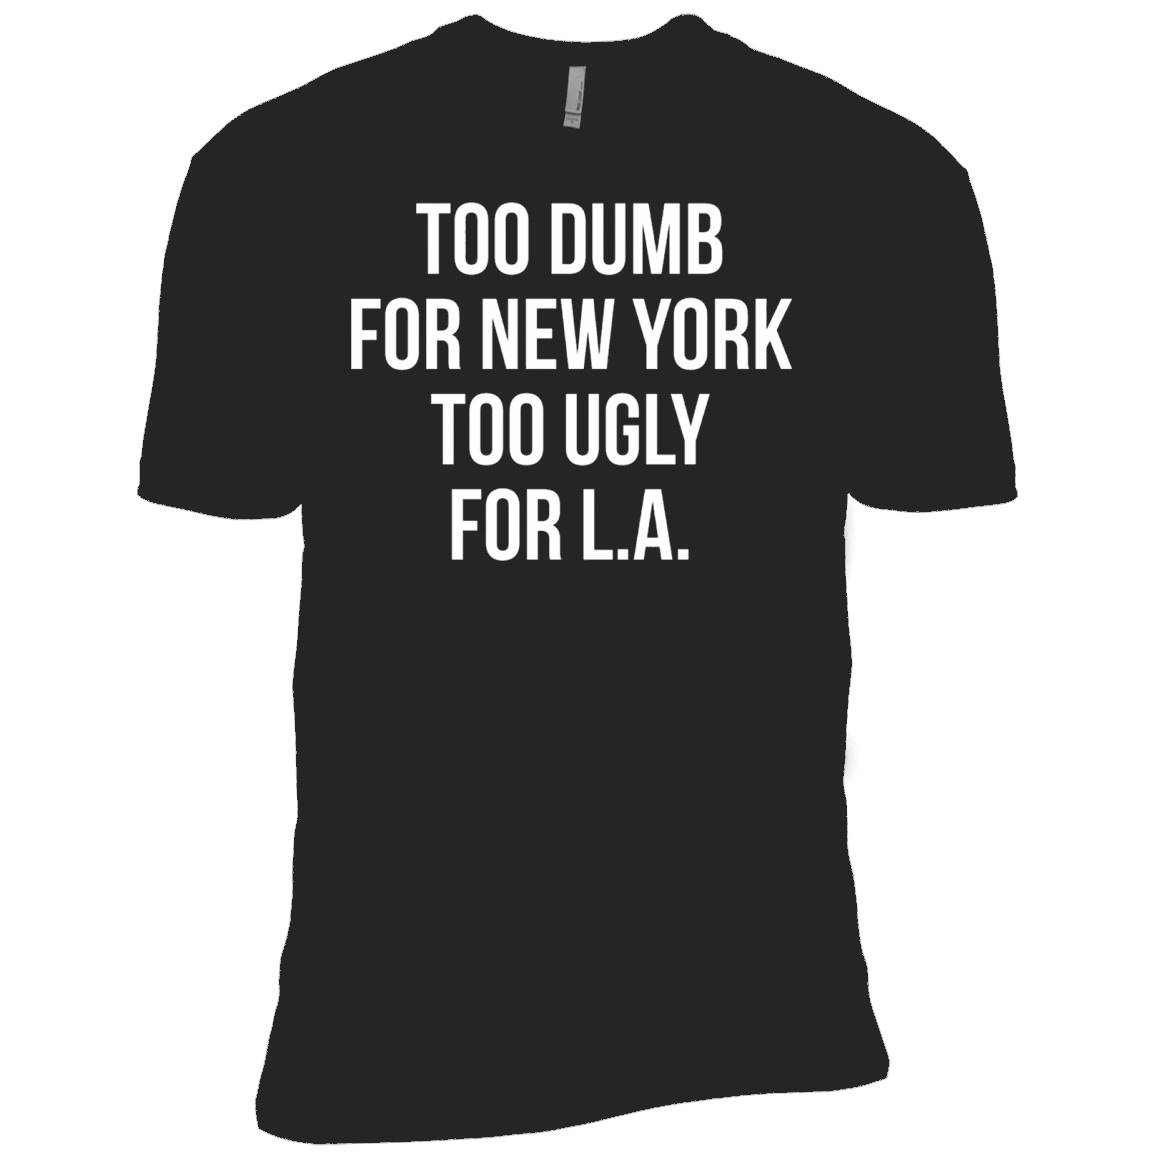 Too Dumb for New York, Too Ugly for L.A. T-Shirt